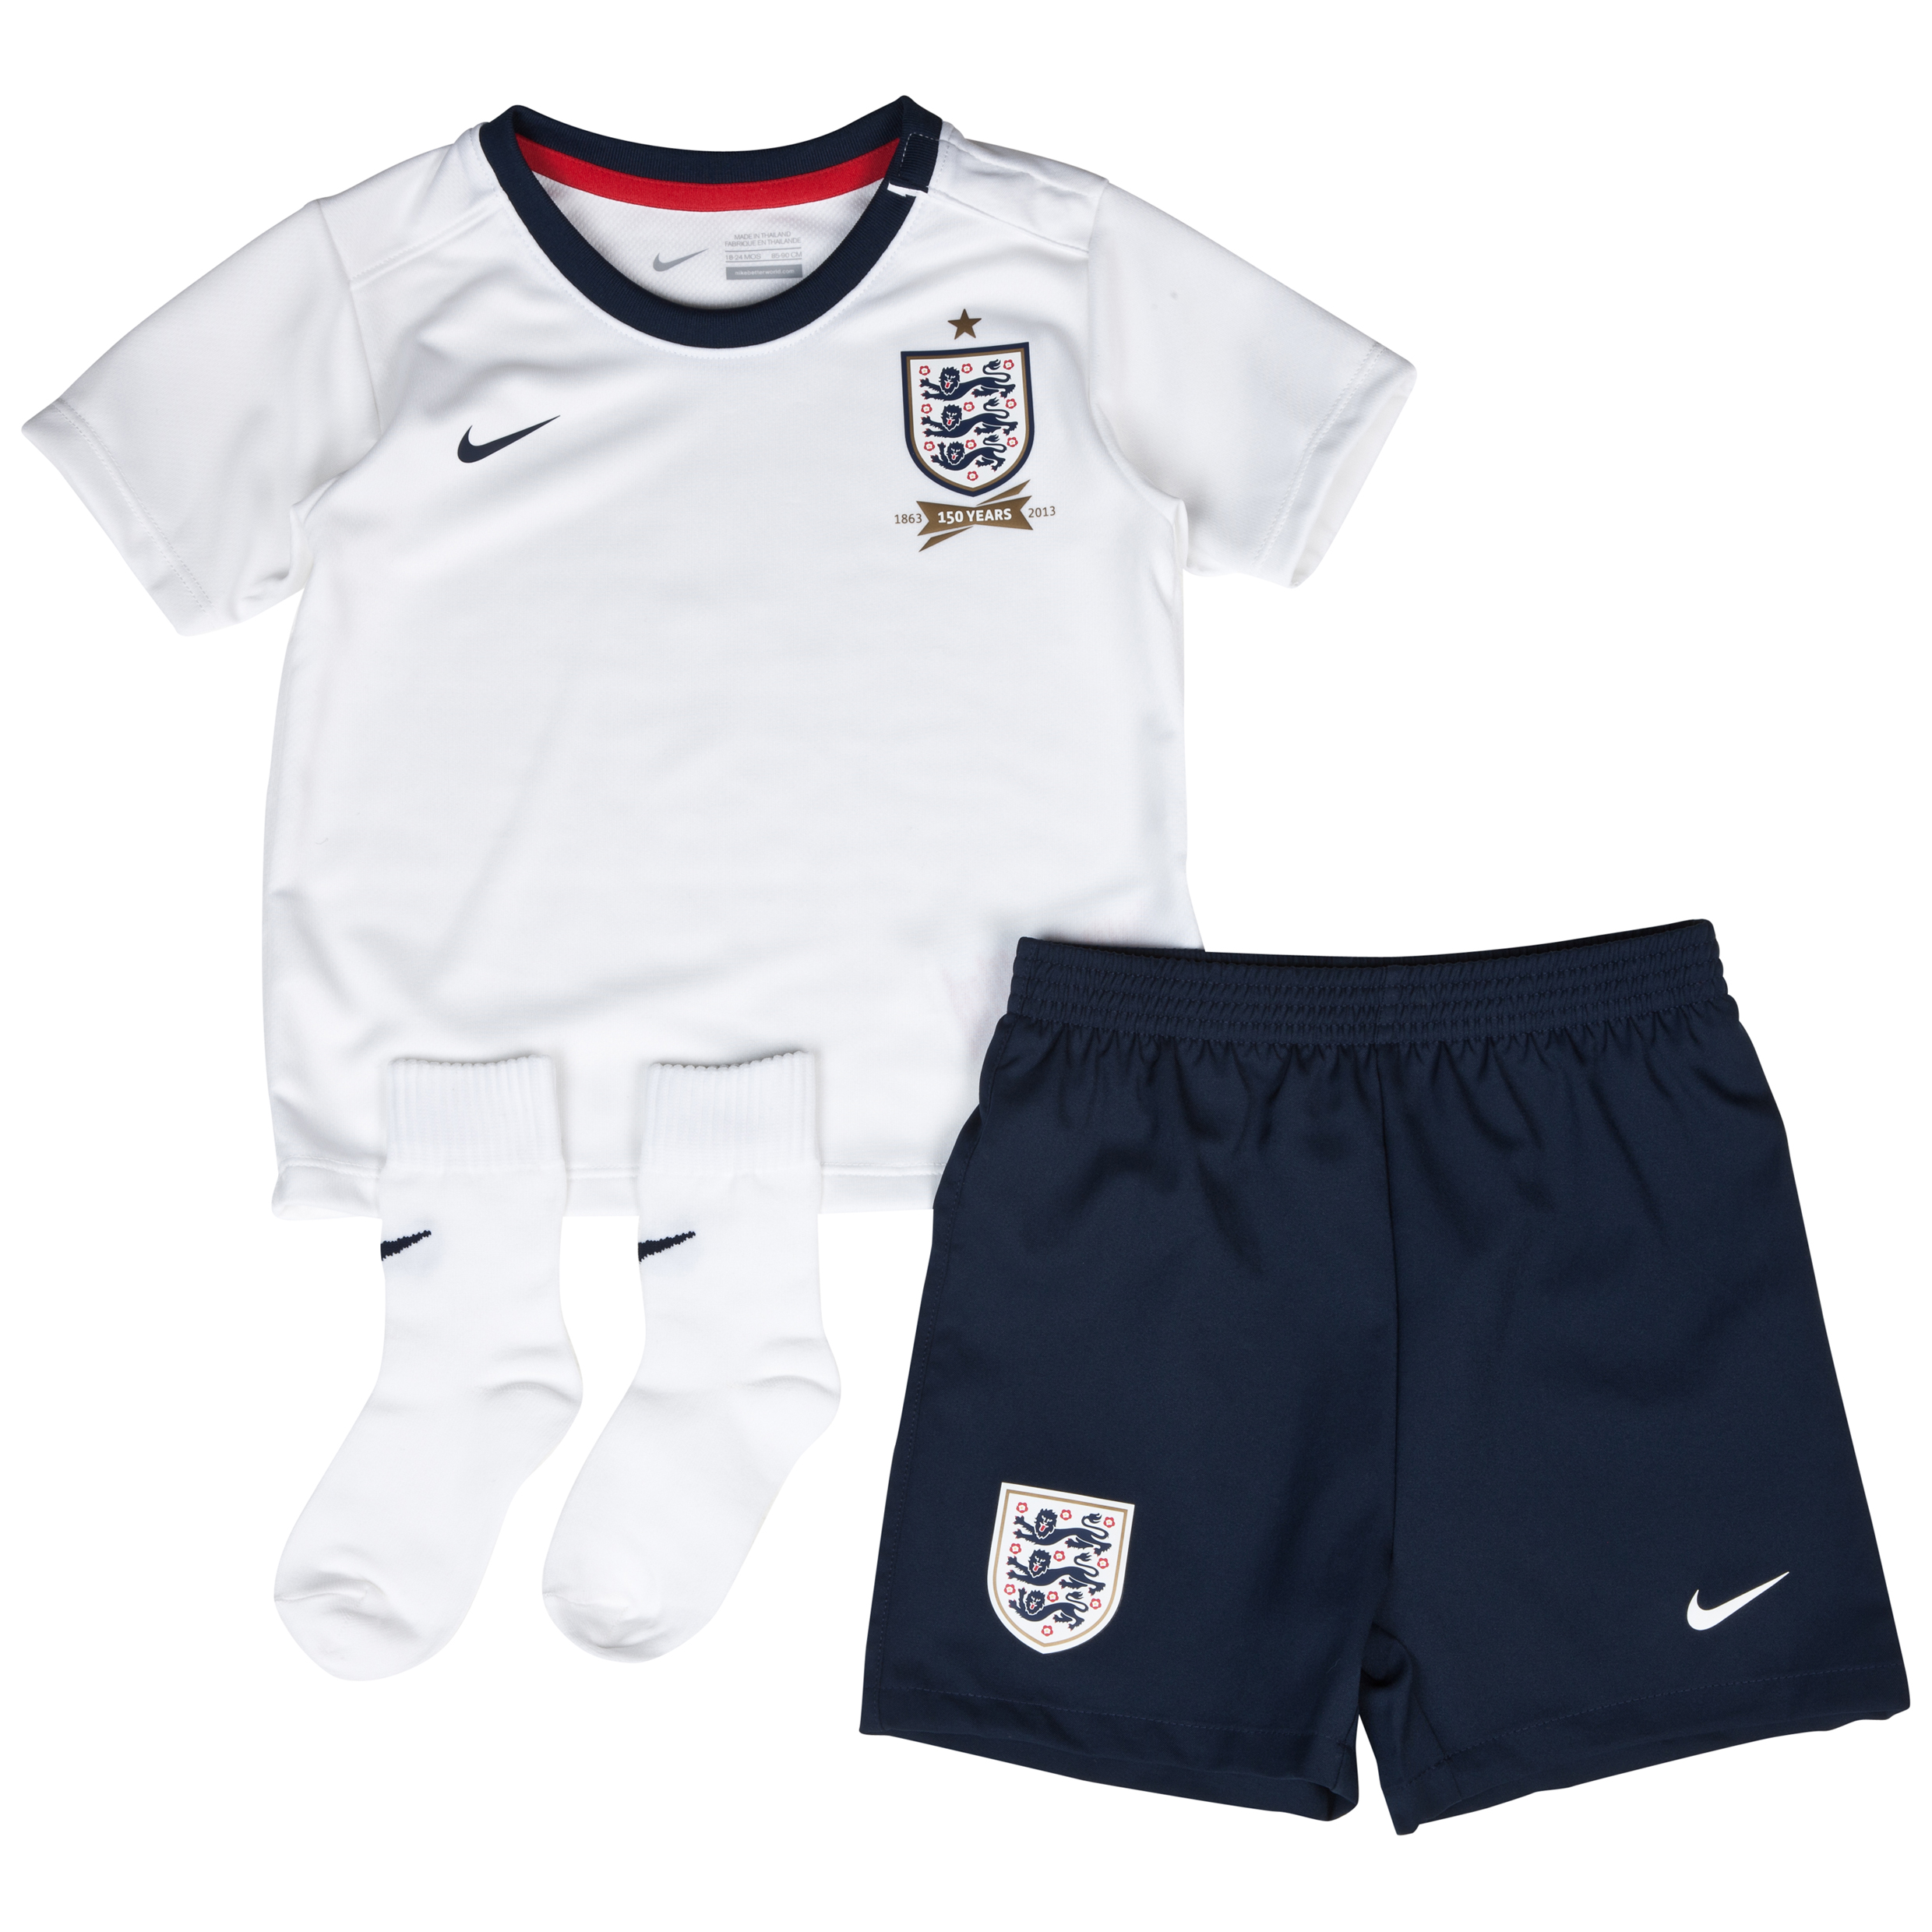 England Home KIT 2013/14 - Infants White